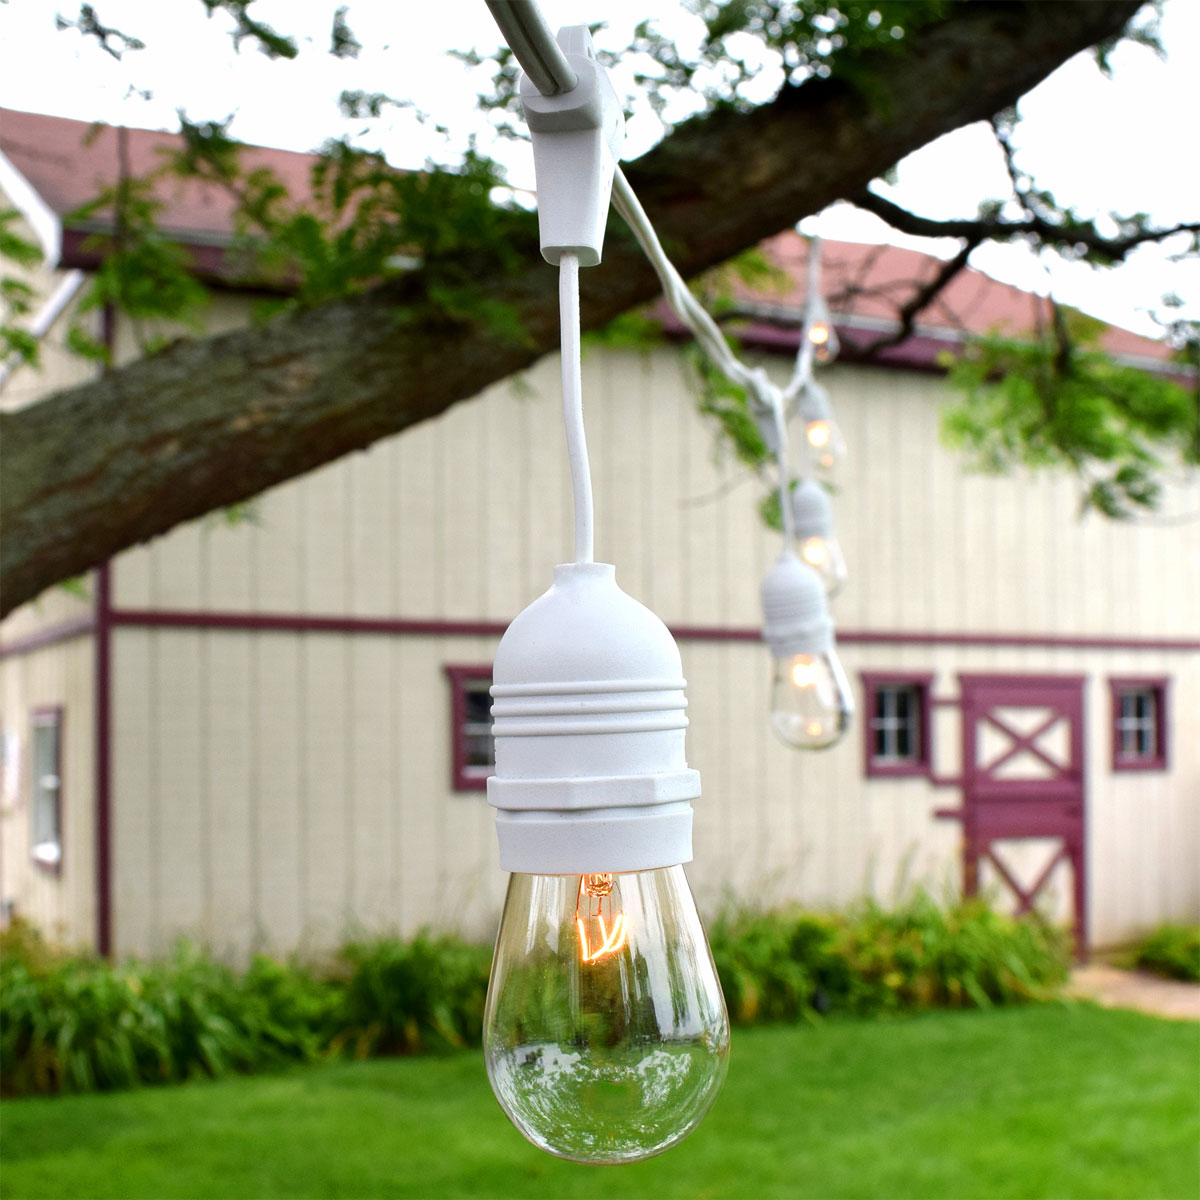 Patio String Lights   Commercial Grade 54u0027 Supsended   White